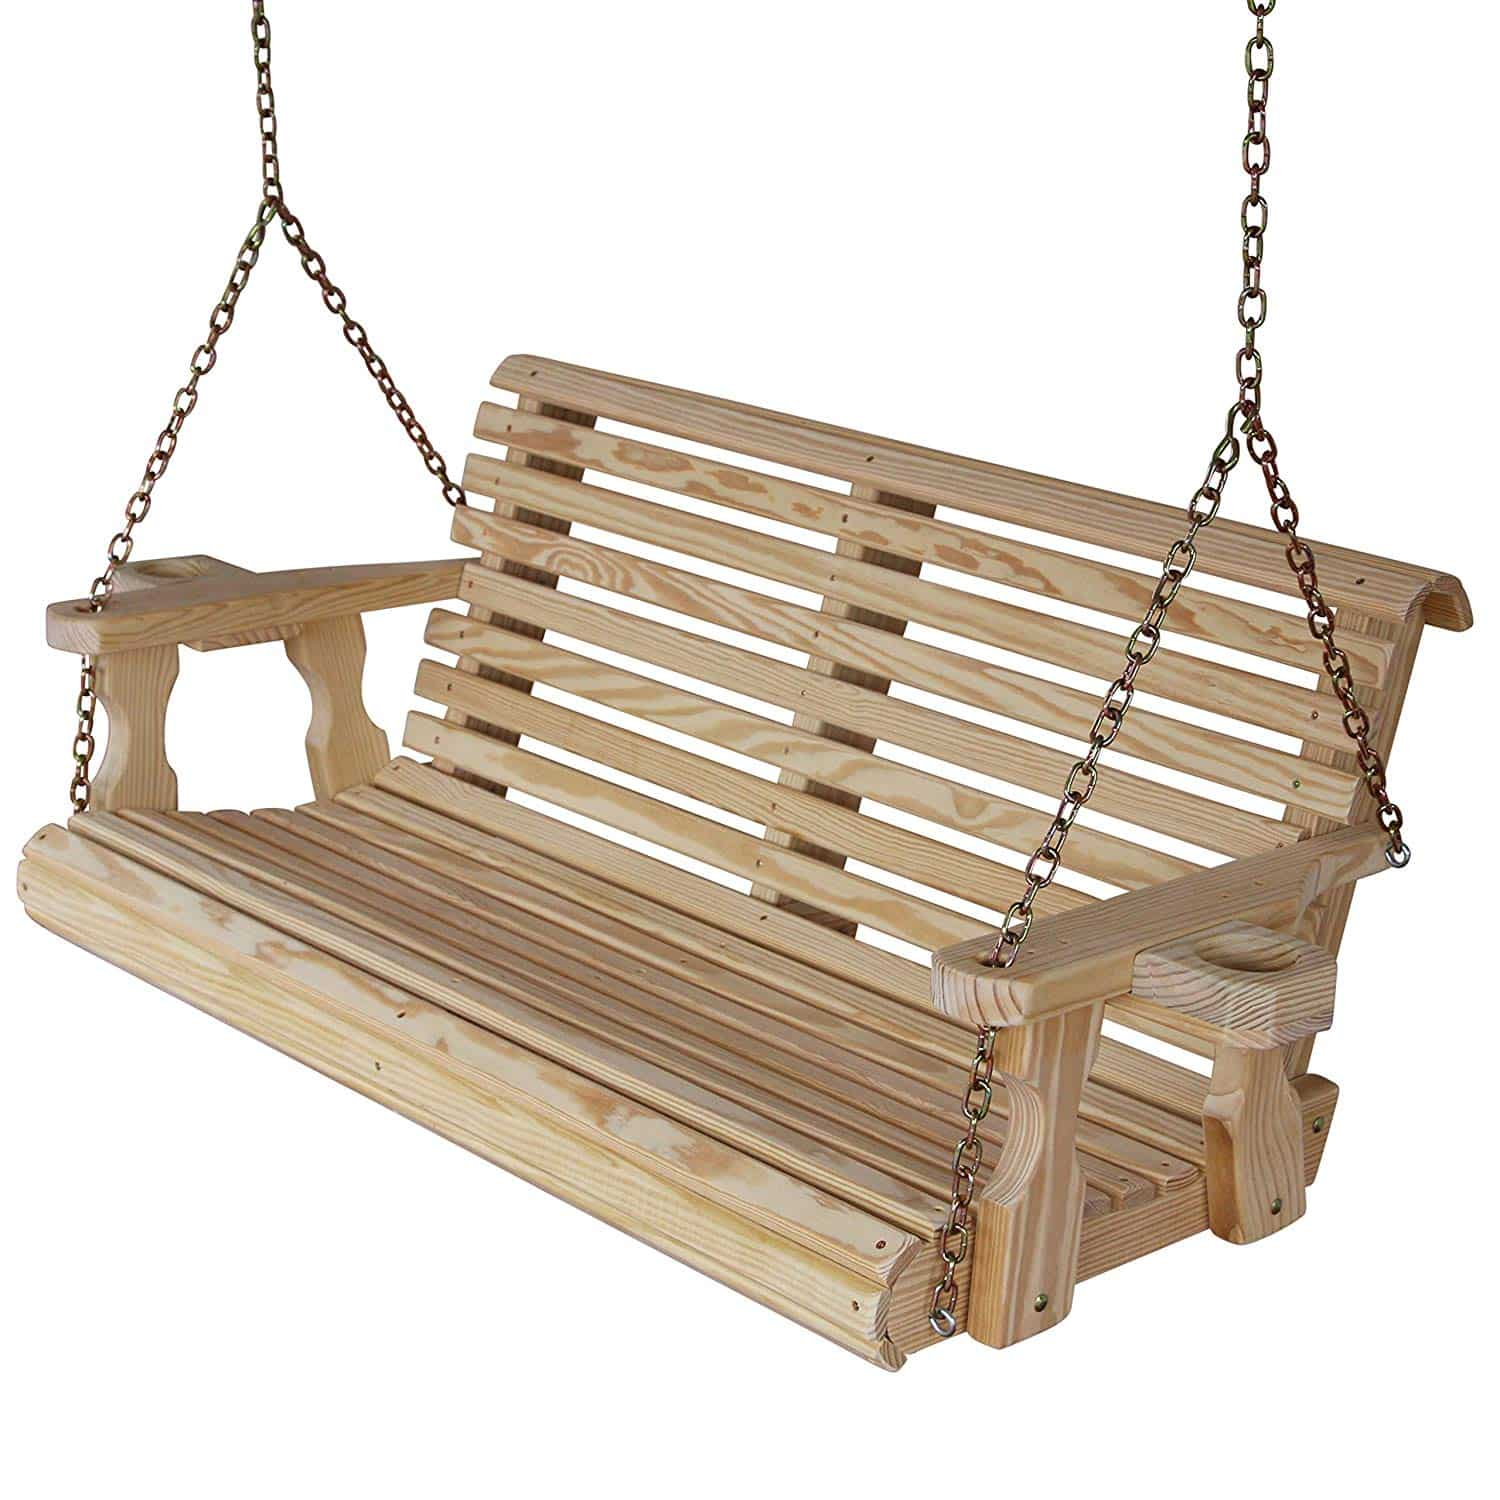 10. CAF Amish Heavy Duty Porch swing